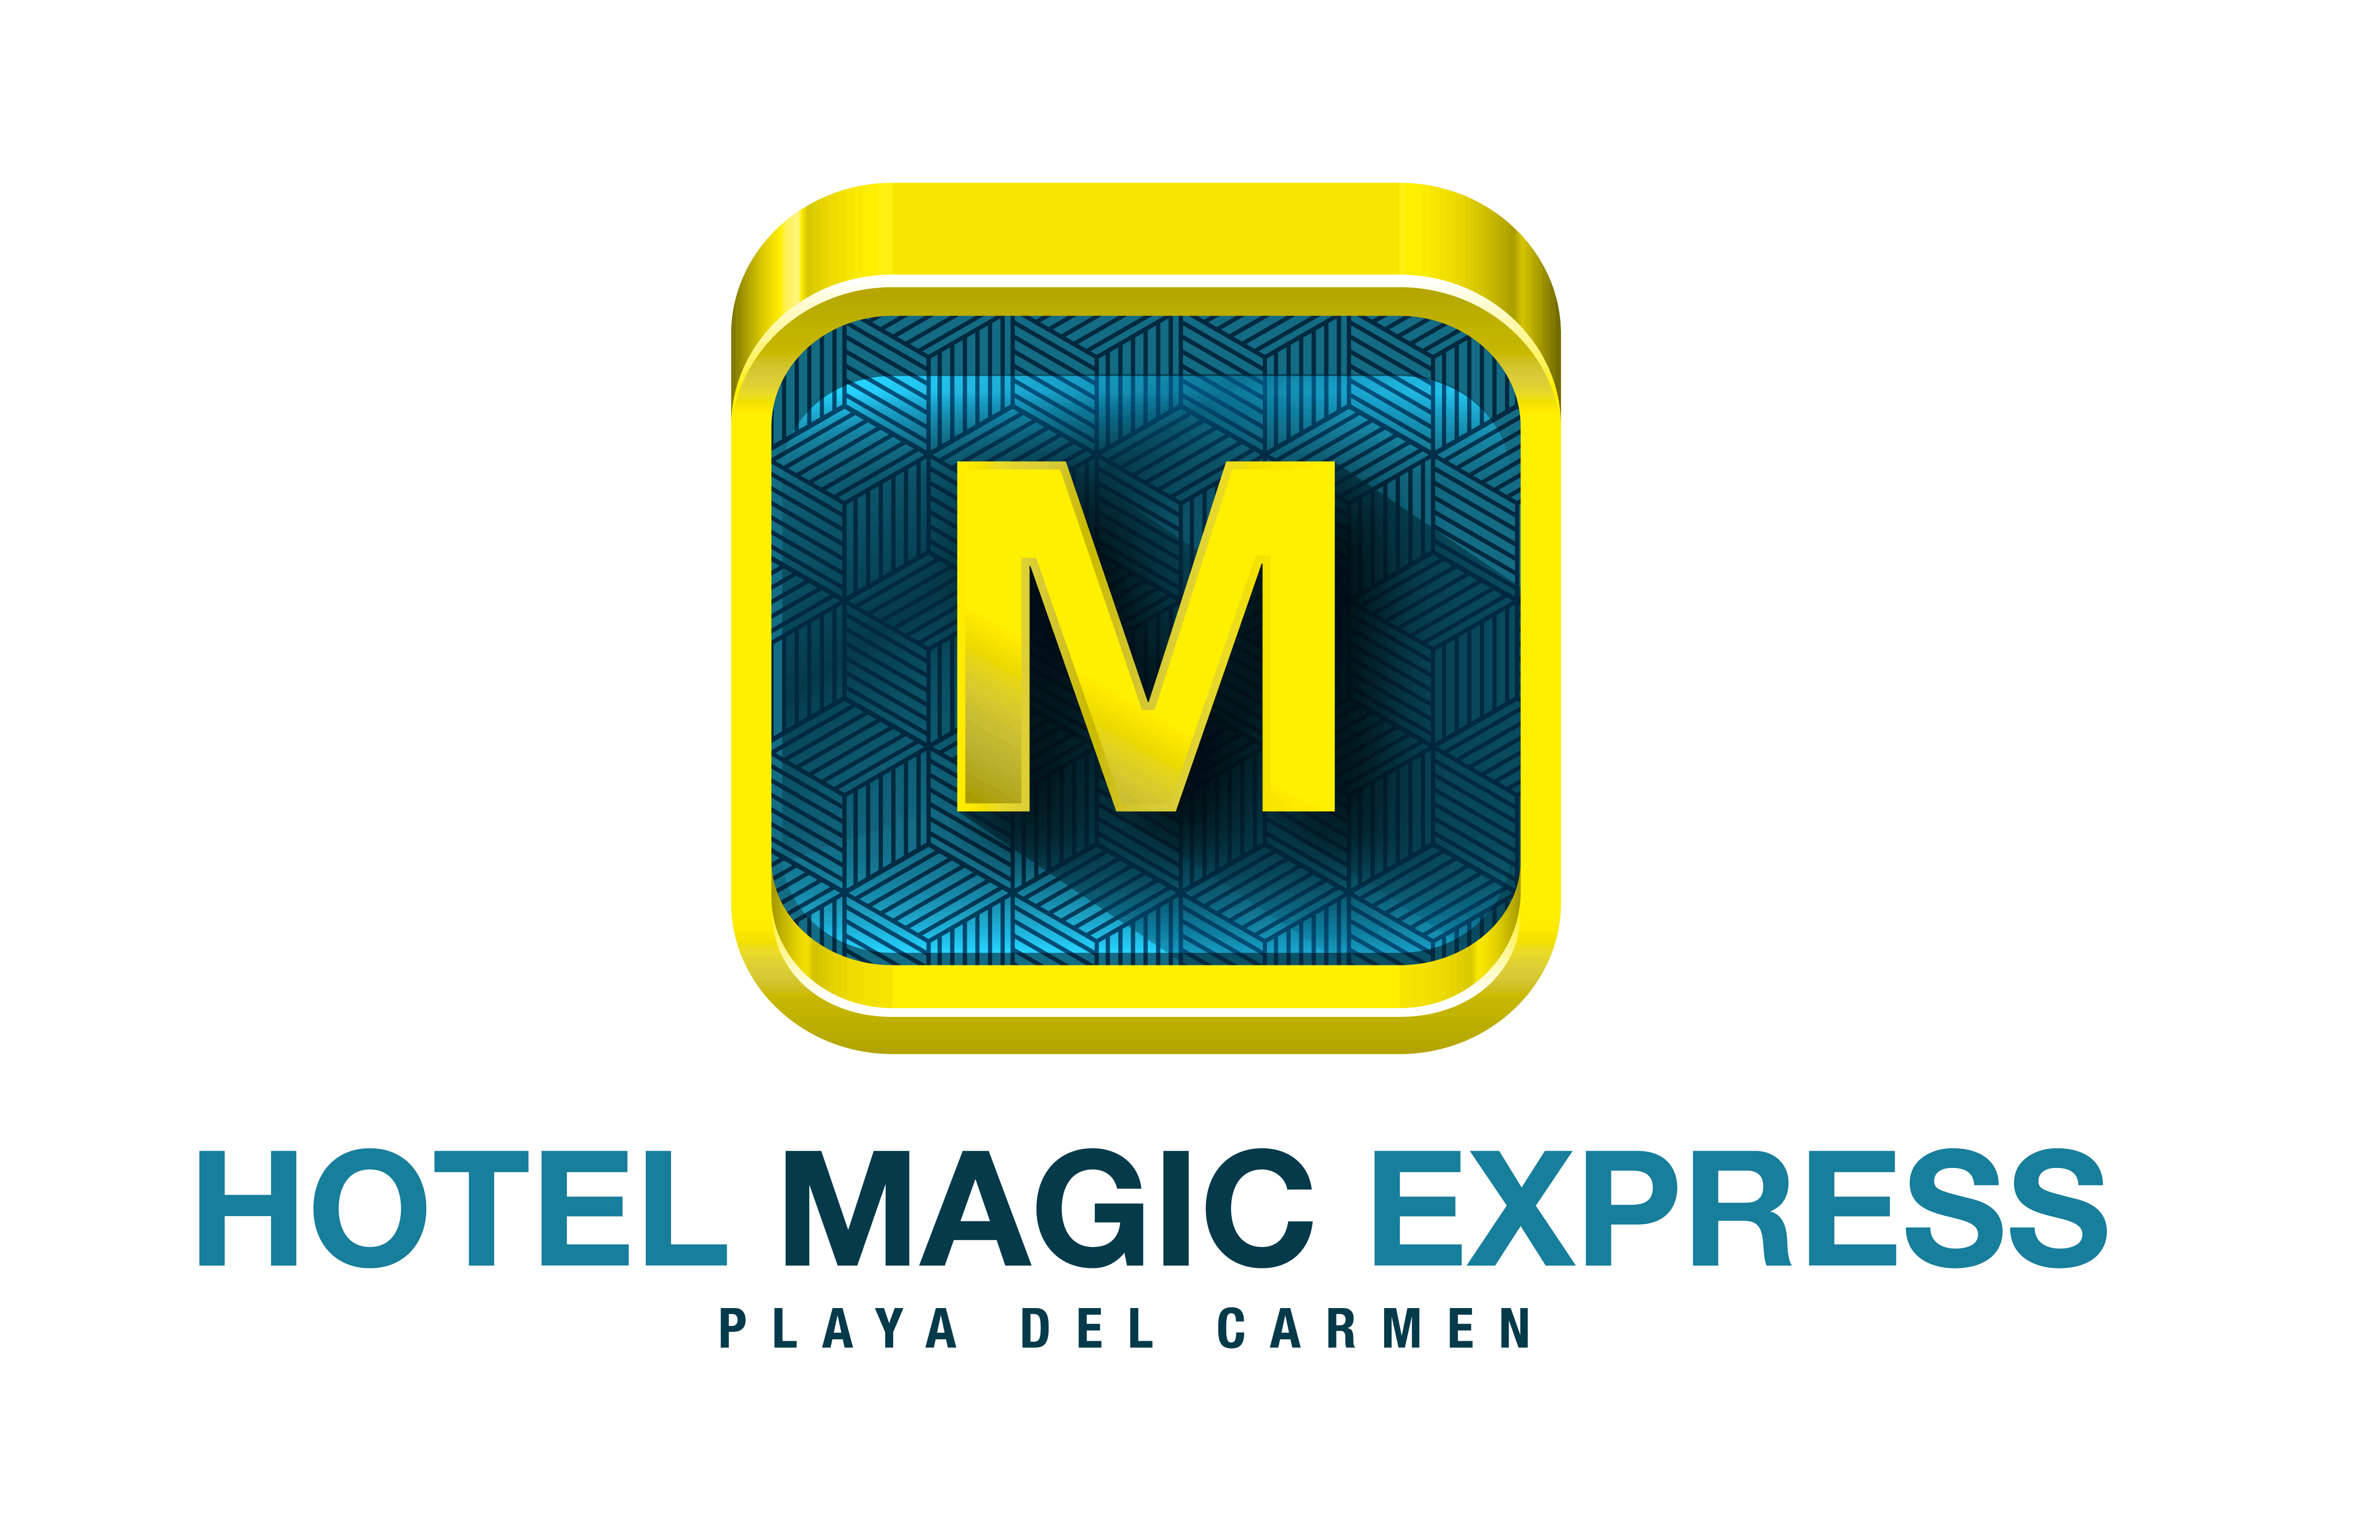 The Magic Express Hotel